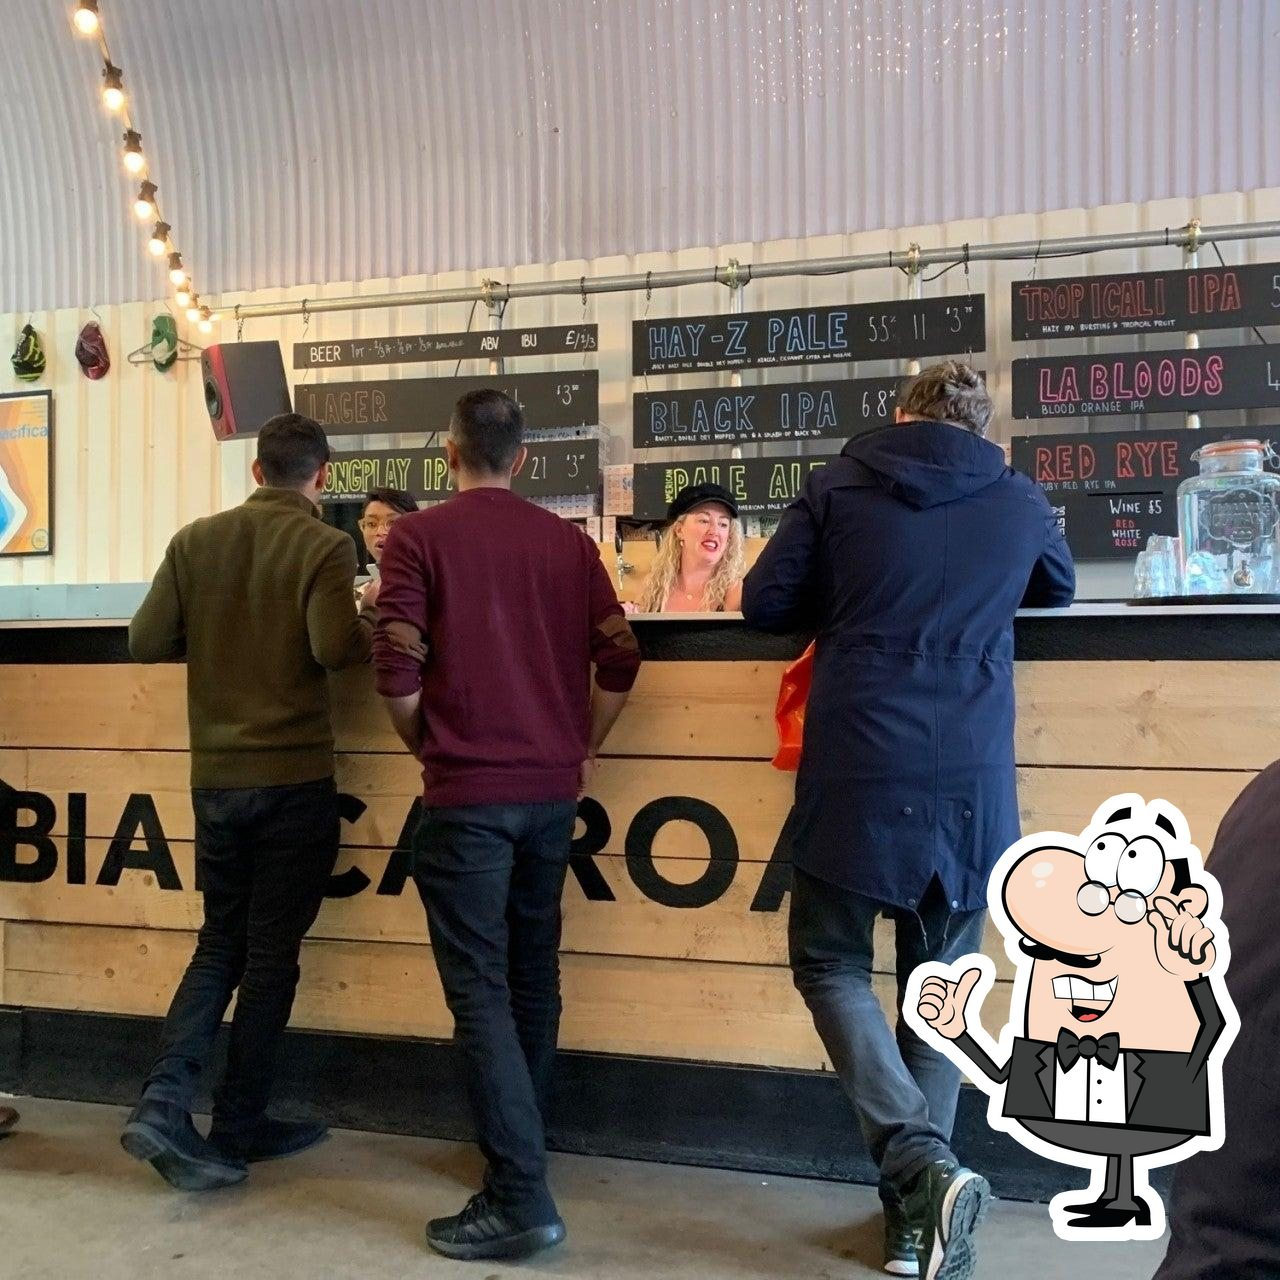 The interior of Bianca Road Brew Co